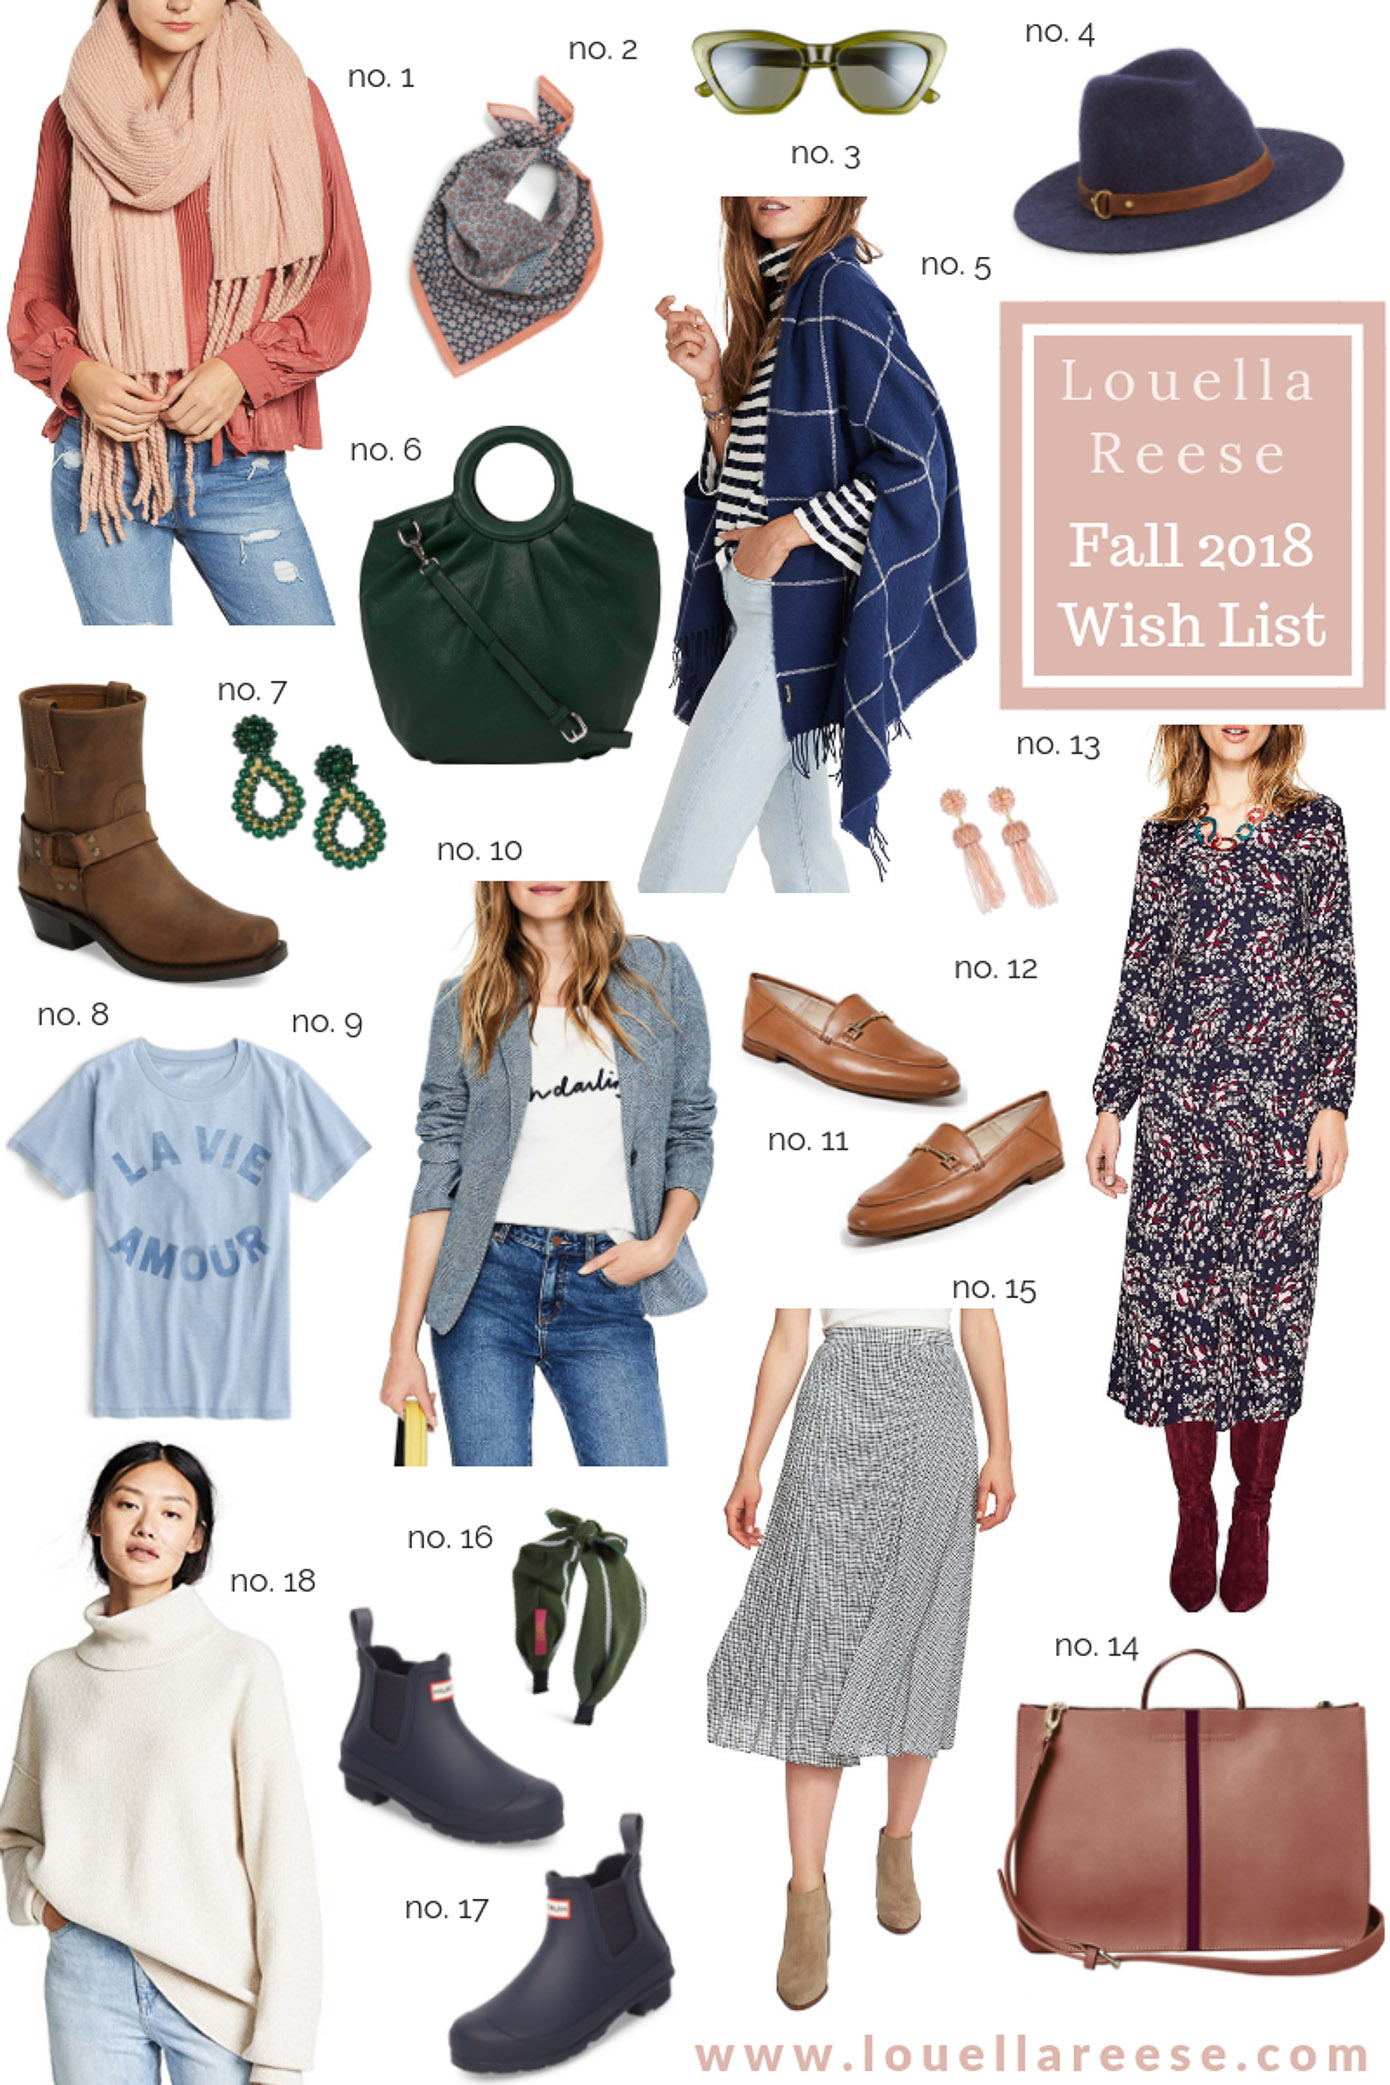 Louella Reese Fall 2018 Wardrobe Wish List | Fall Wardrobe Must Haves featured on Louella Reese